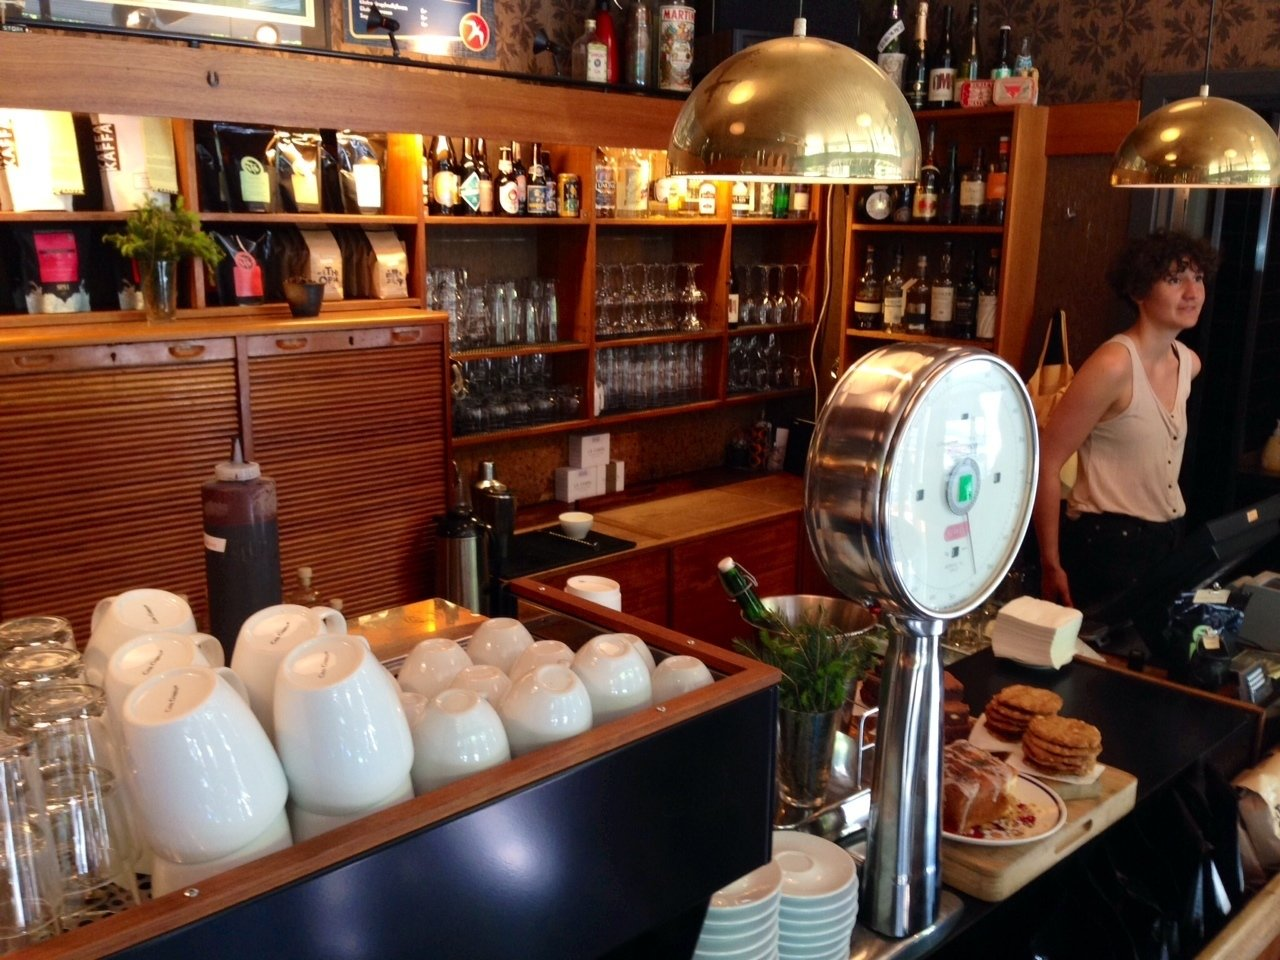 Fuglen  Fans of mid-century modern furniture shouldn't miss the recently expanded Fuglen, a popular vintage cafe by day and an even more popular cocktail lounge by night. Spread out across four snug rooms, the bar-cafe doubles as a furniture showroom, and virtually all of the low-slung furnishings, which date mostly from the 1950s and 60s, are for sale. Many reveal the influence of Japanese aethetics on Norwegian designers, many of whom explicitly sought a warmer version of classic Scandinavian modernism.  Photo 7 of 7 in 5 Places to Visit in Oslo